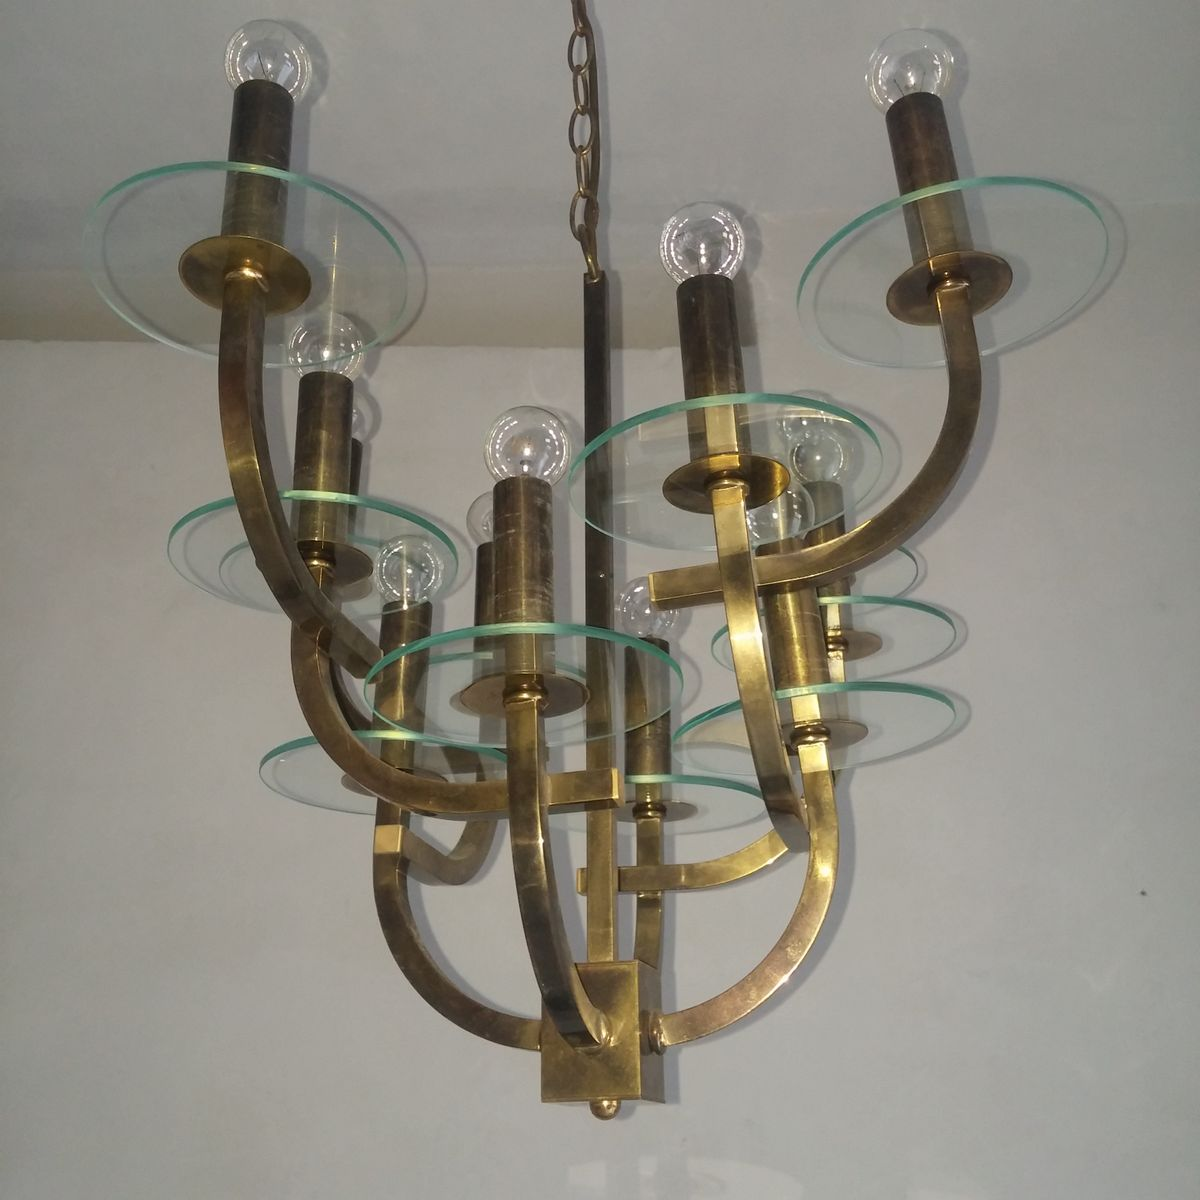 chandelier mid century 12 lampes en vente sur pamono. Black Bedroom Furniture Sets. Home Design Ideas